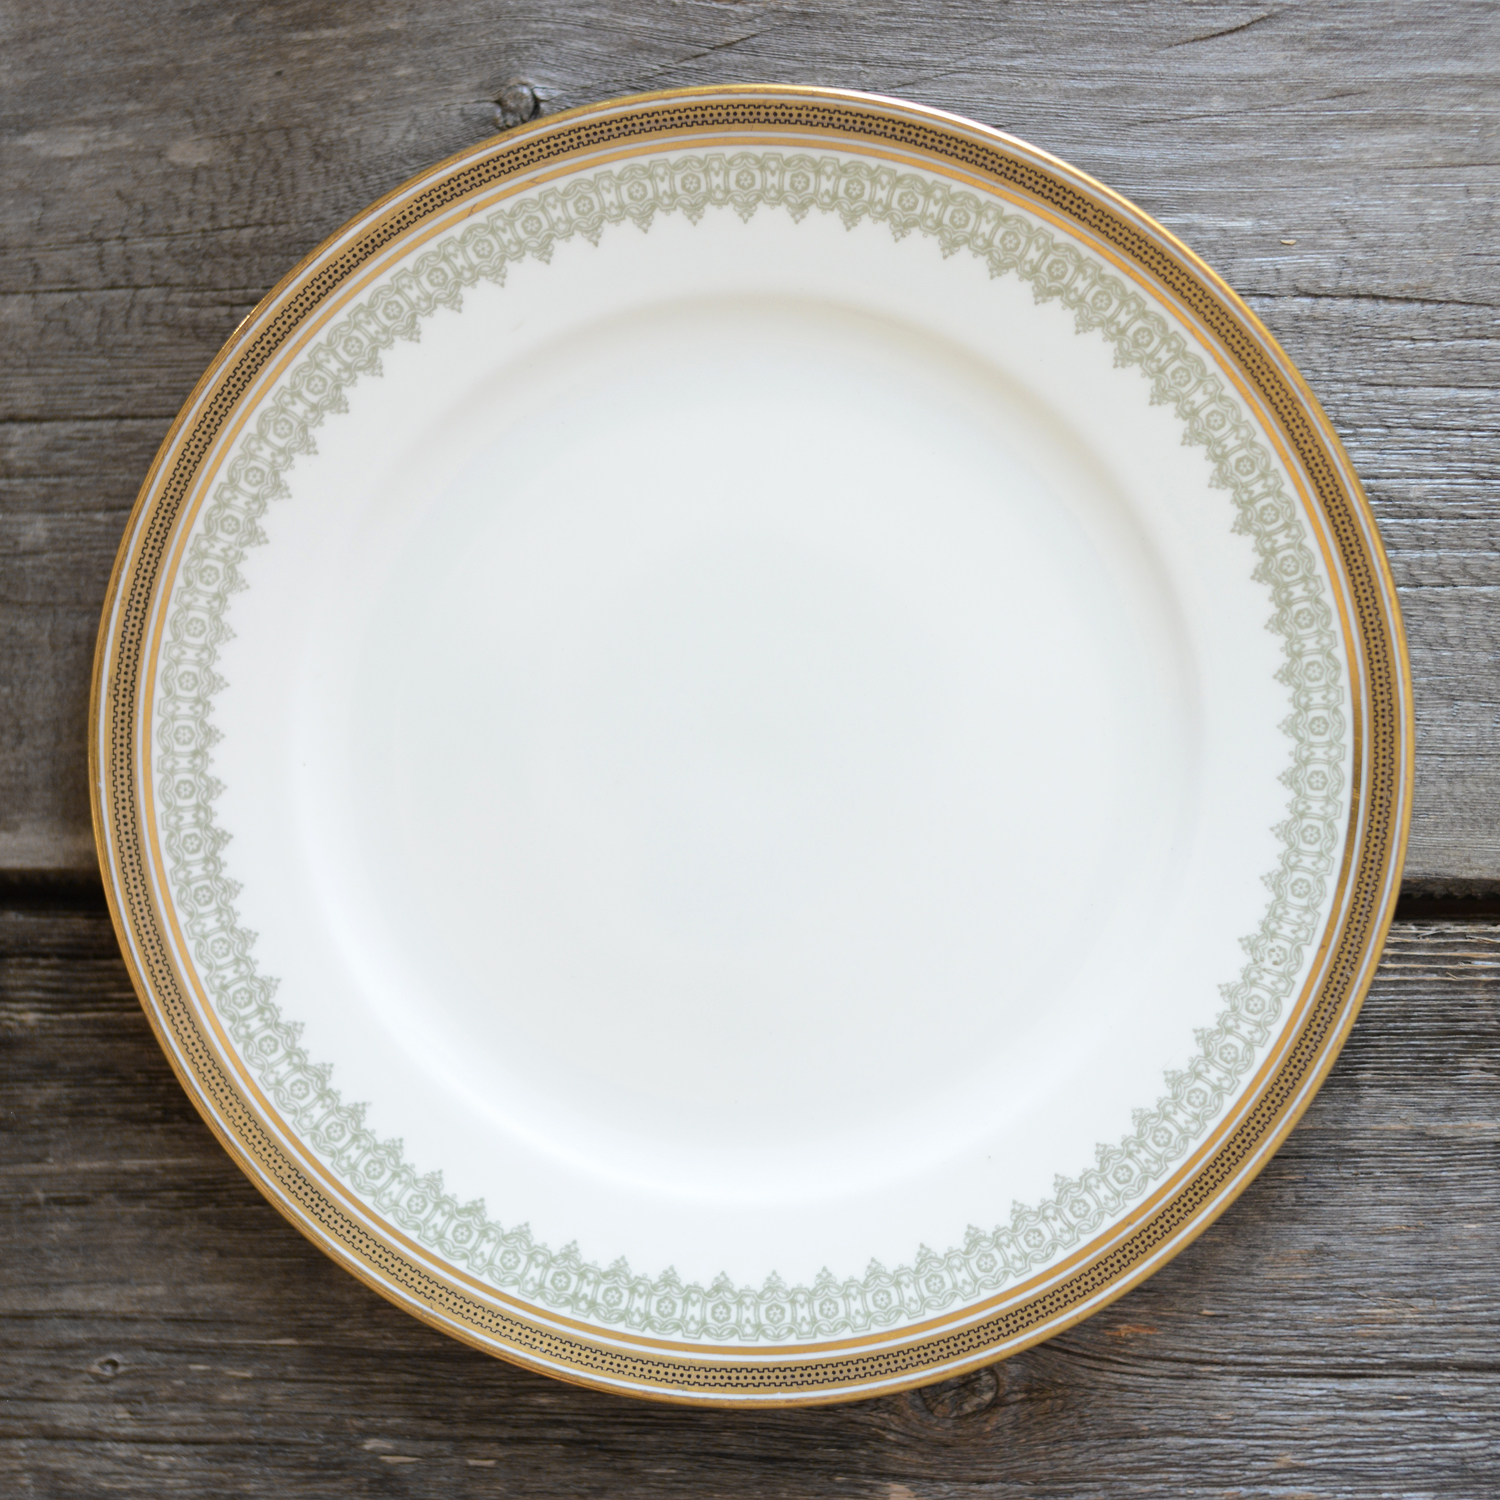 corbyn dinner plate - 2 available